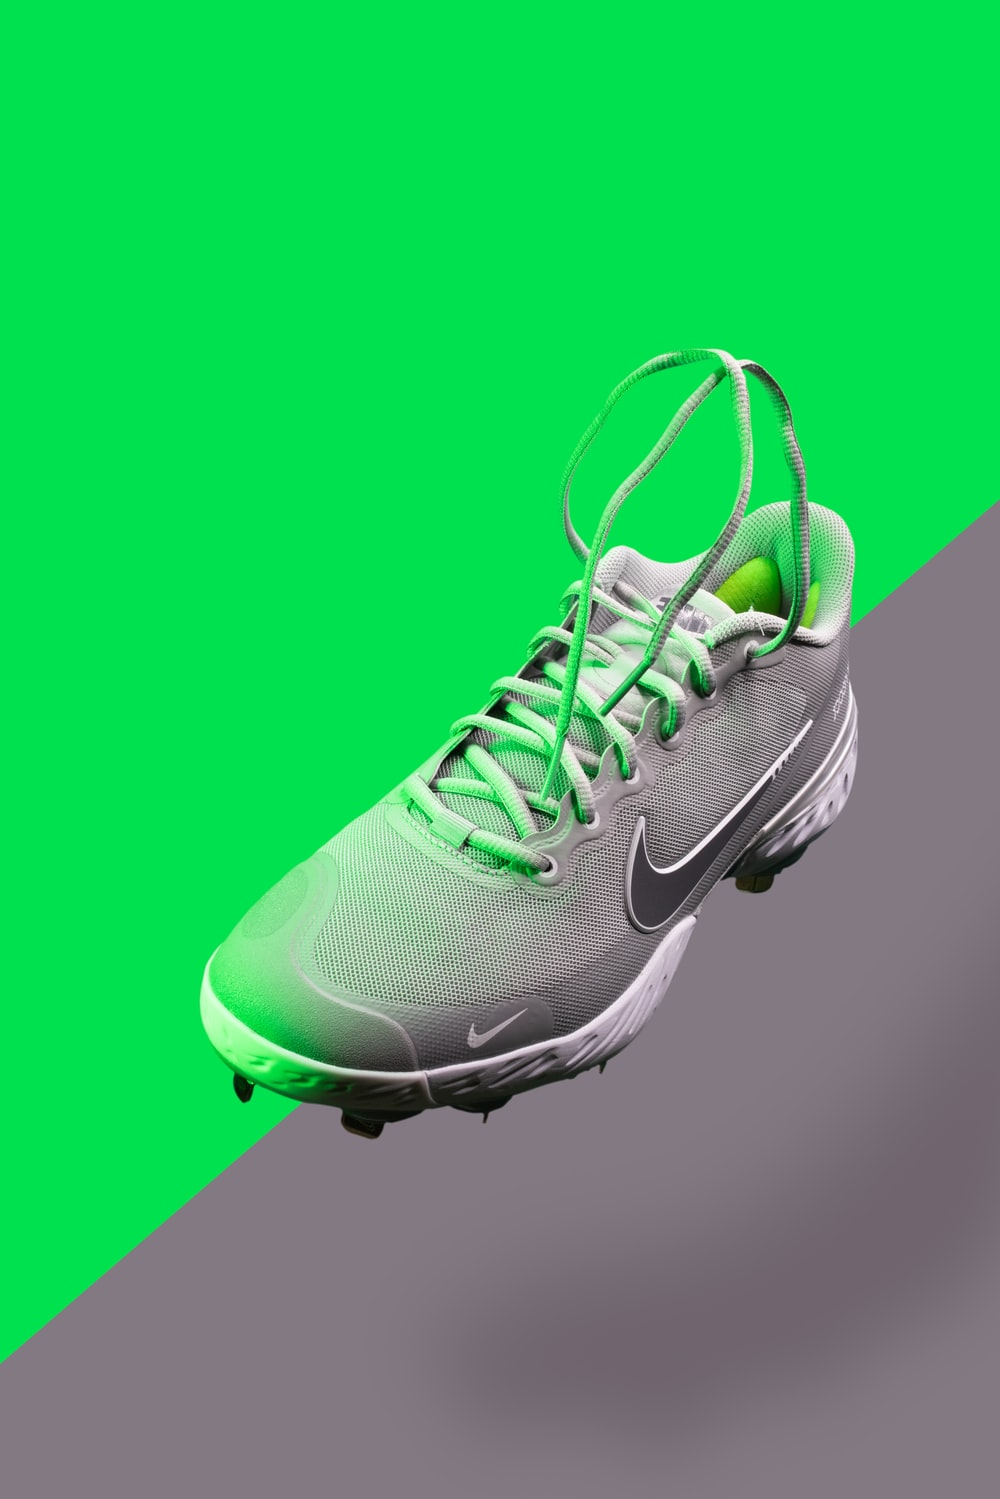 green and white nike athletic shoe